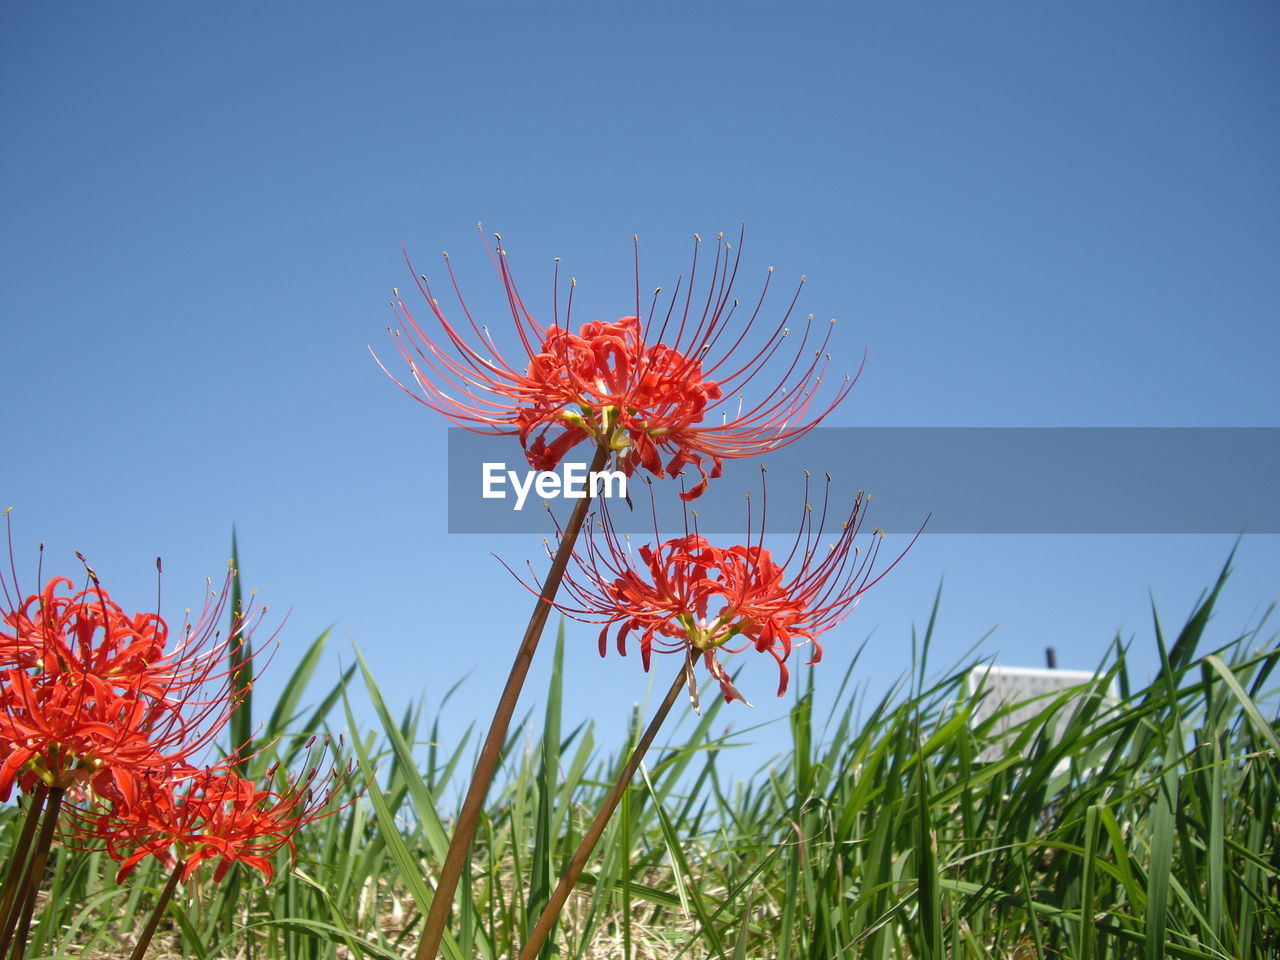 Close-up of red flowering plant against clear blue sky